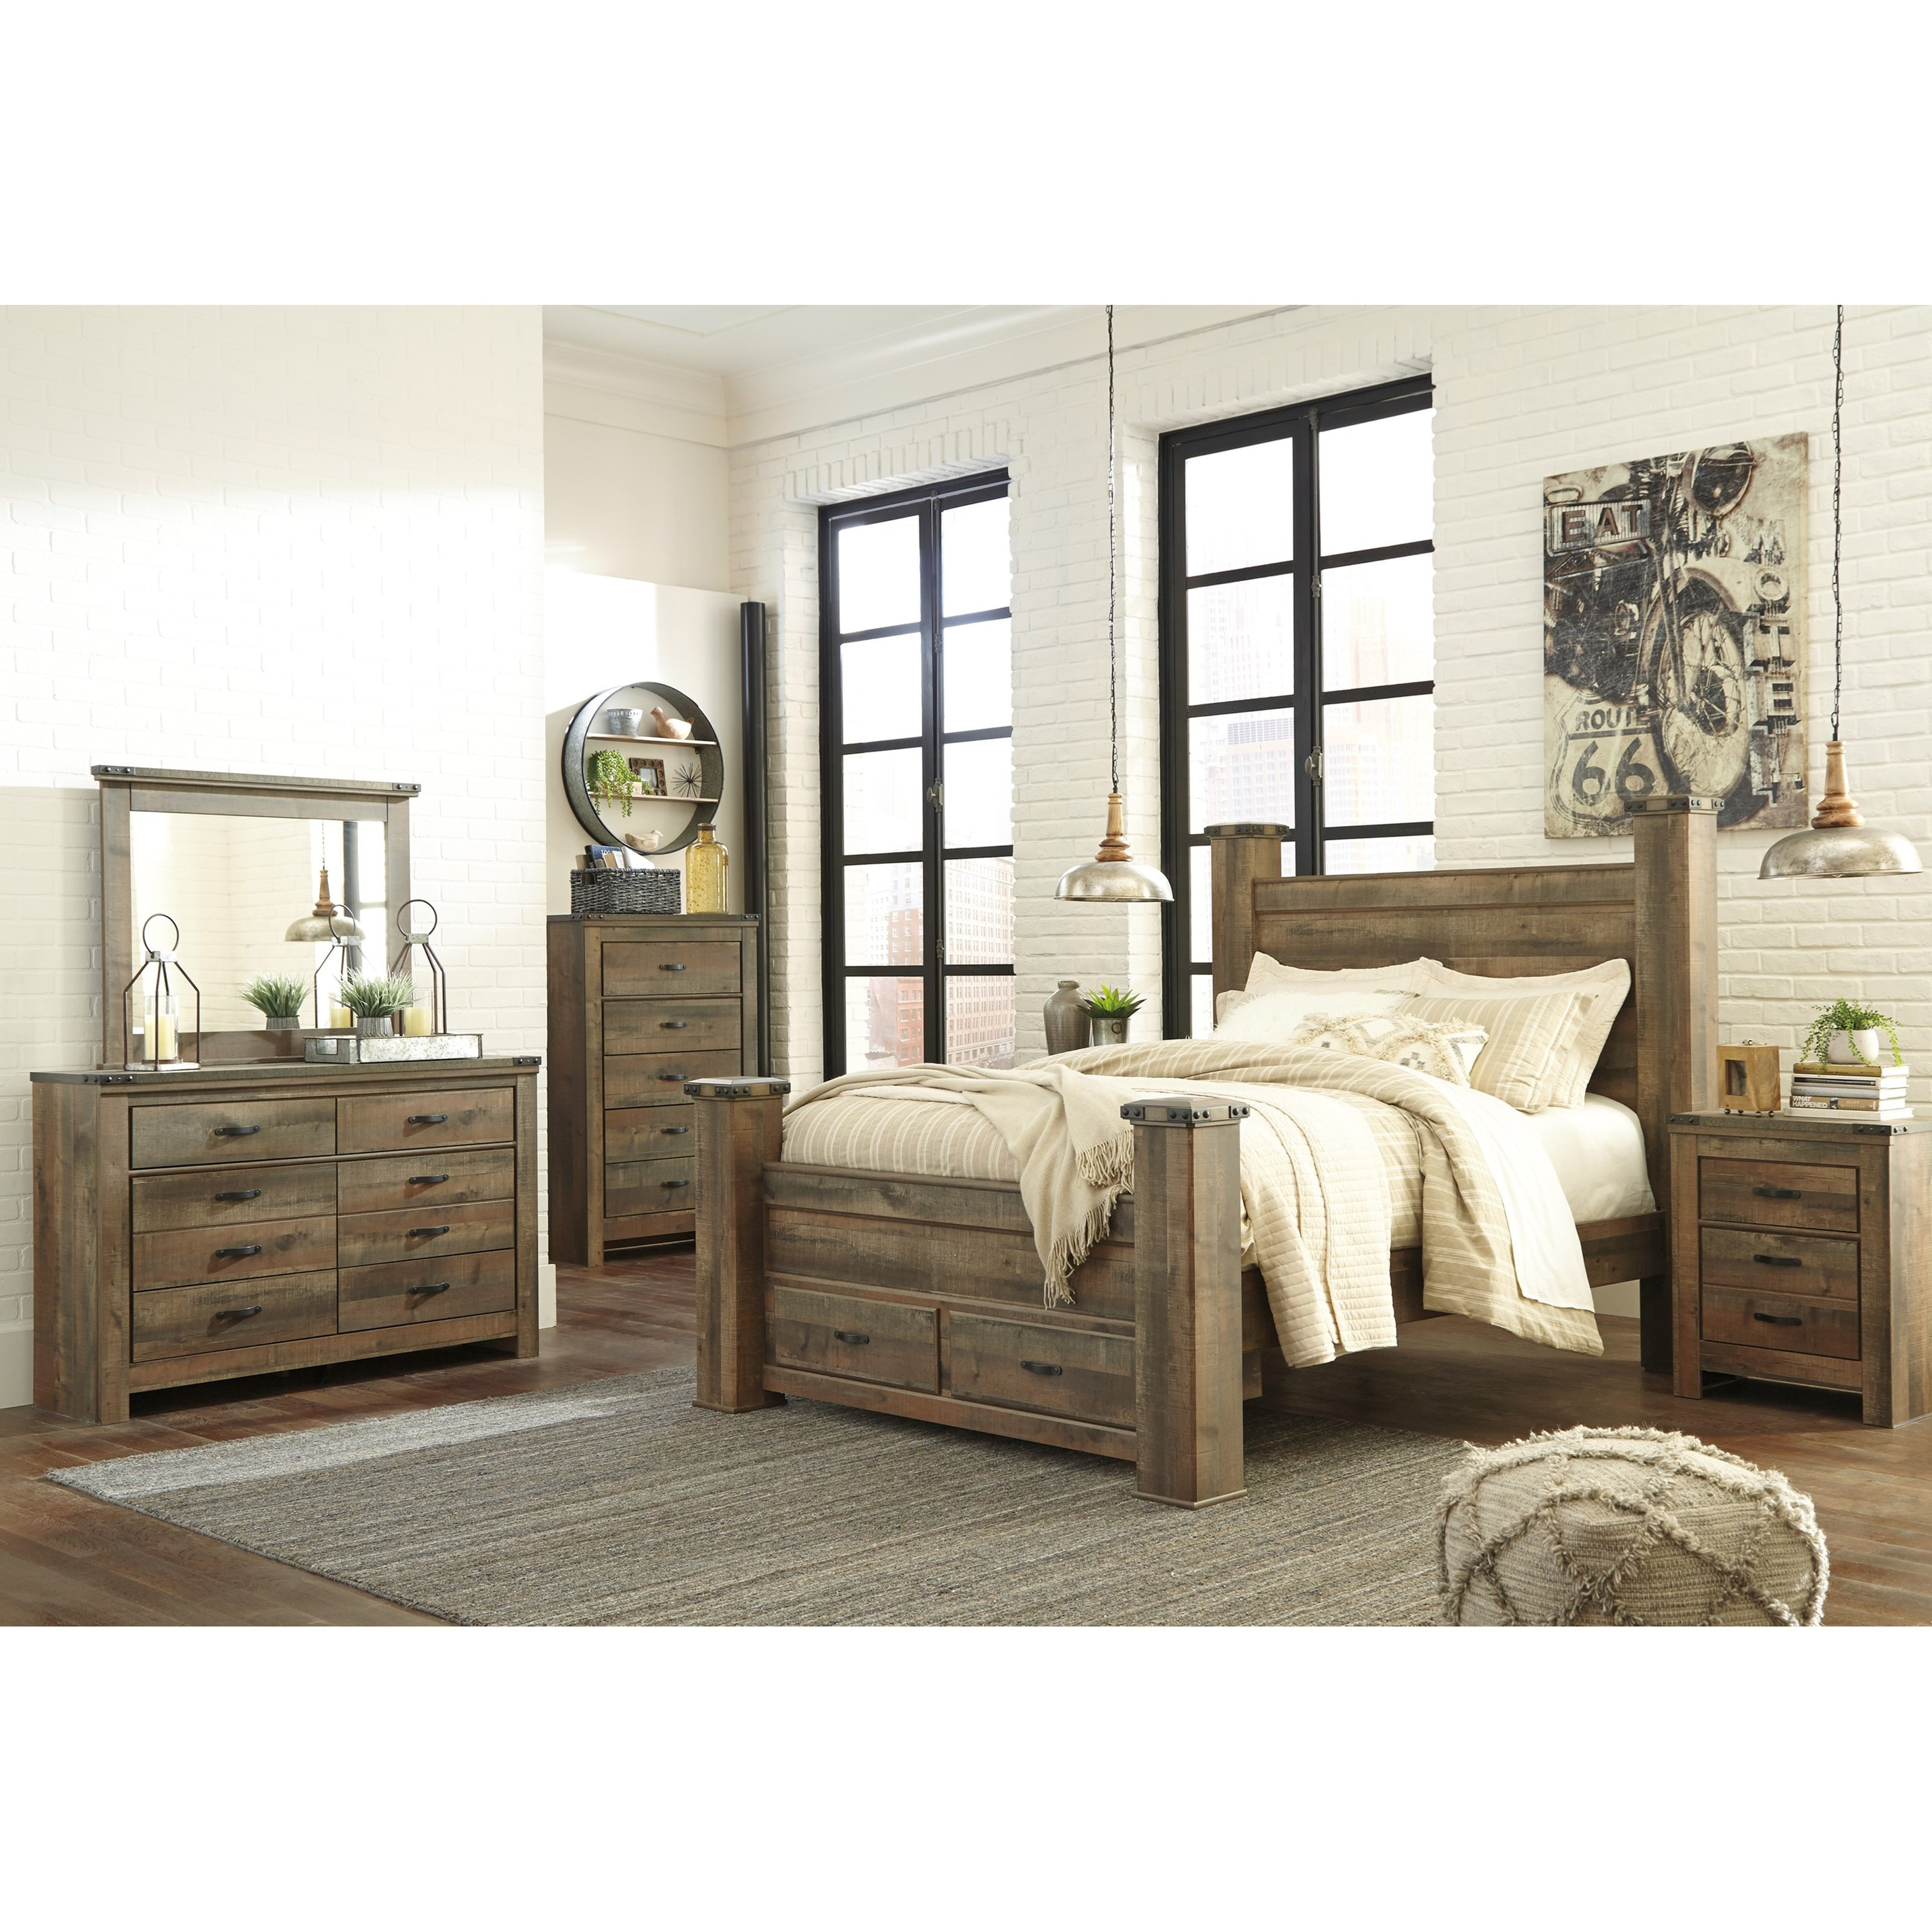 Ashley Furniture Beds: Signature Design By Ashley Vickers Rustic Look Queen